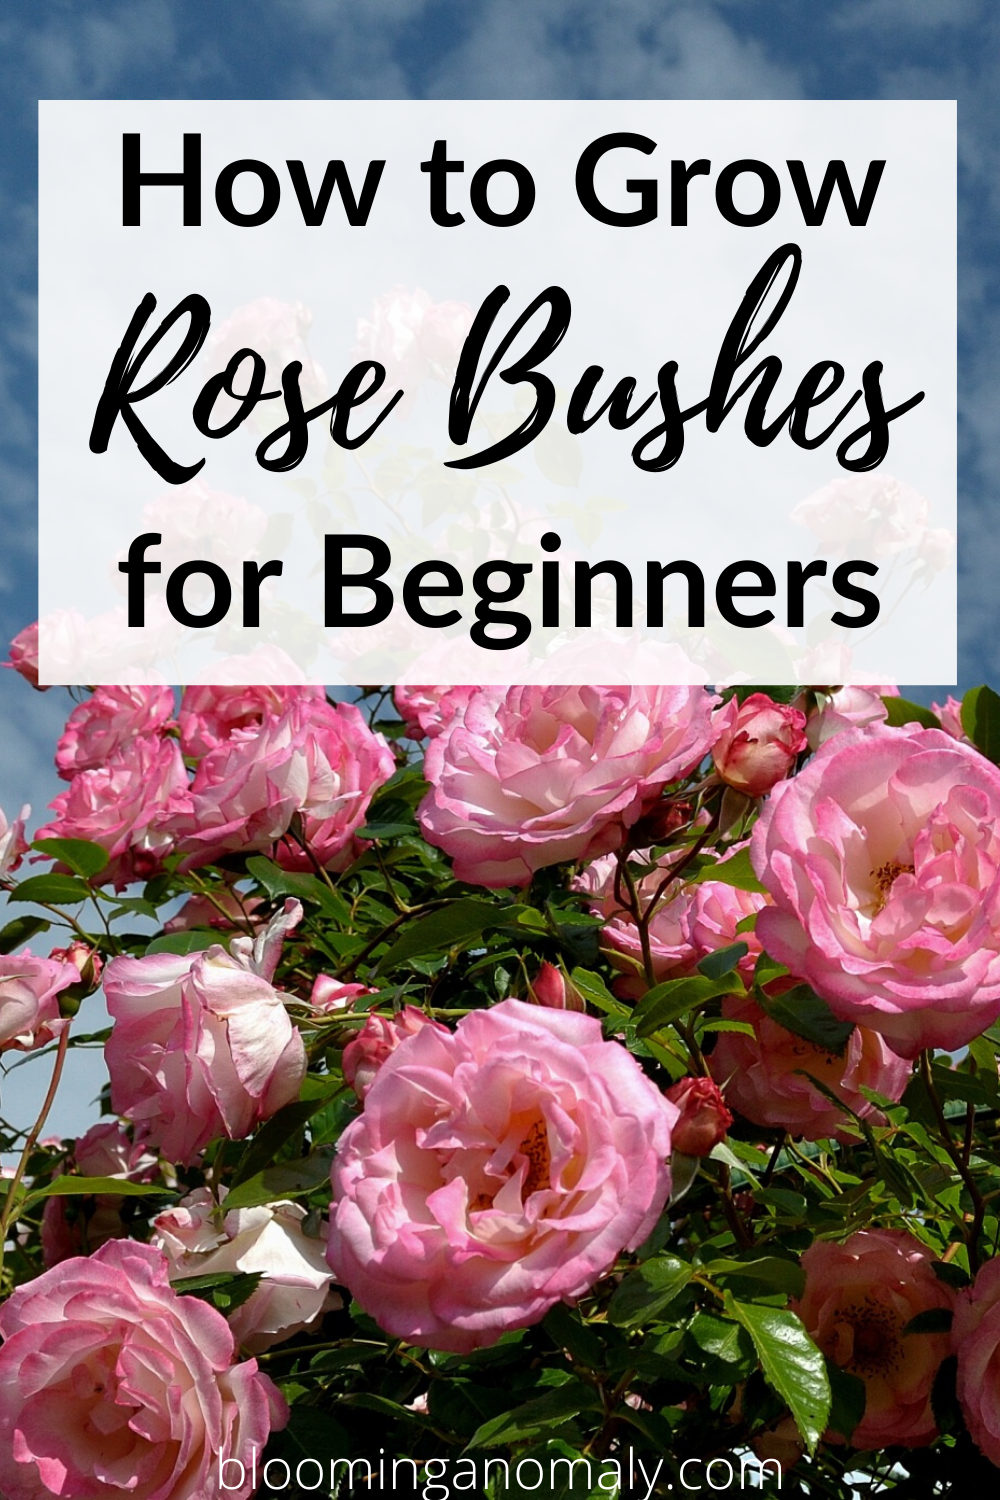 How To Grow Rose Bushes For Beginners In 2020 Growing Roses Rose Care Rose Bush Care